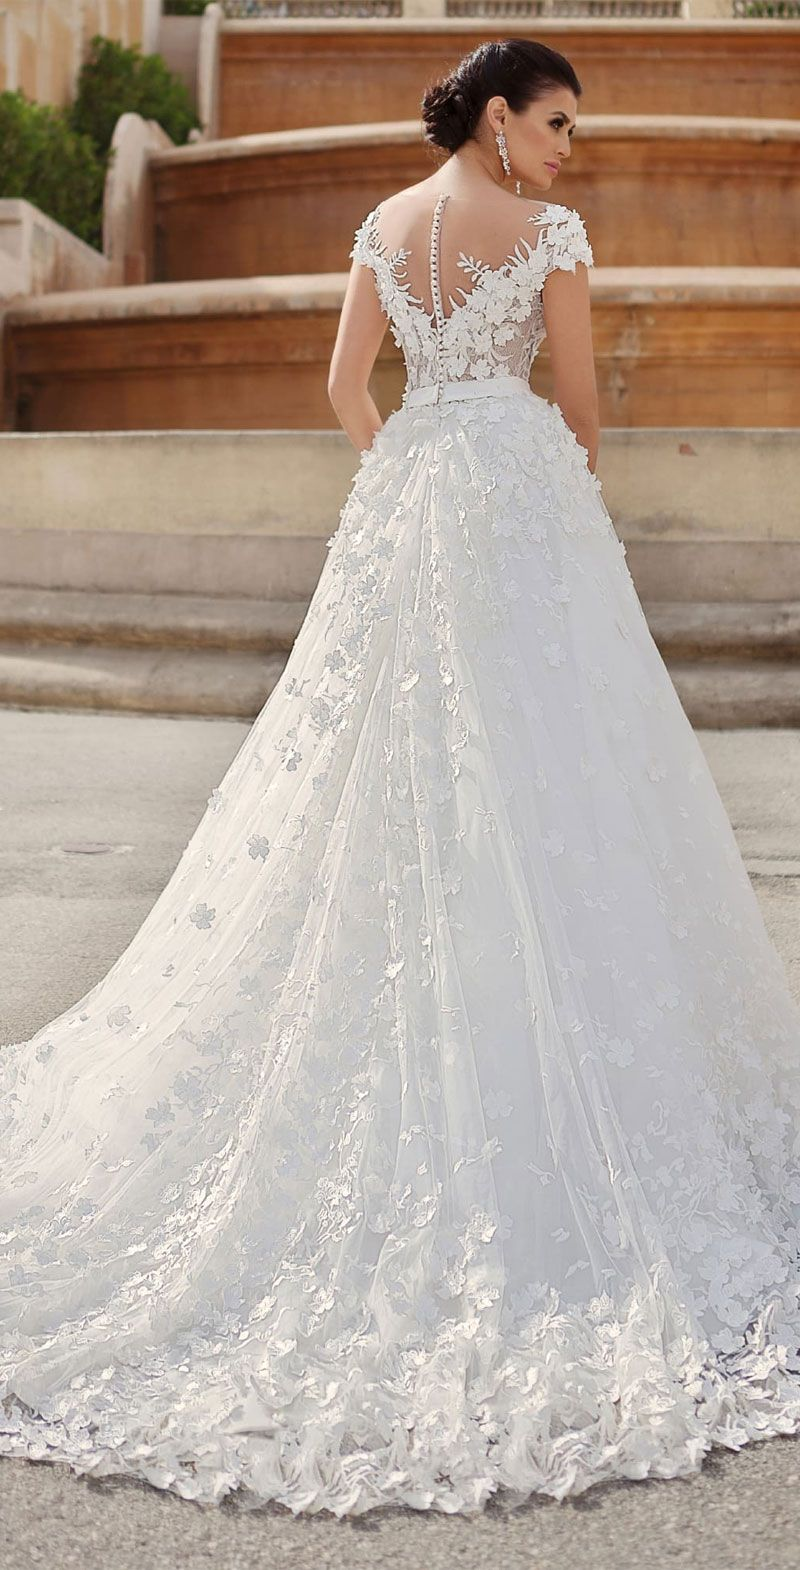 Gabbiano Wedding Dresses - Princess Dreams Collection embellishment wedding dress #bride #bridalgown #weddingdress #weddinggown #weddingdresses